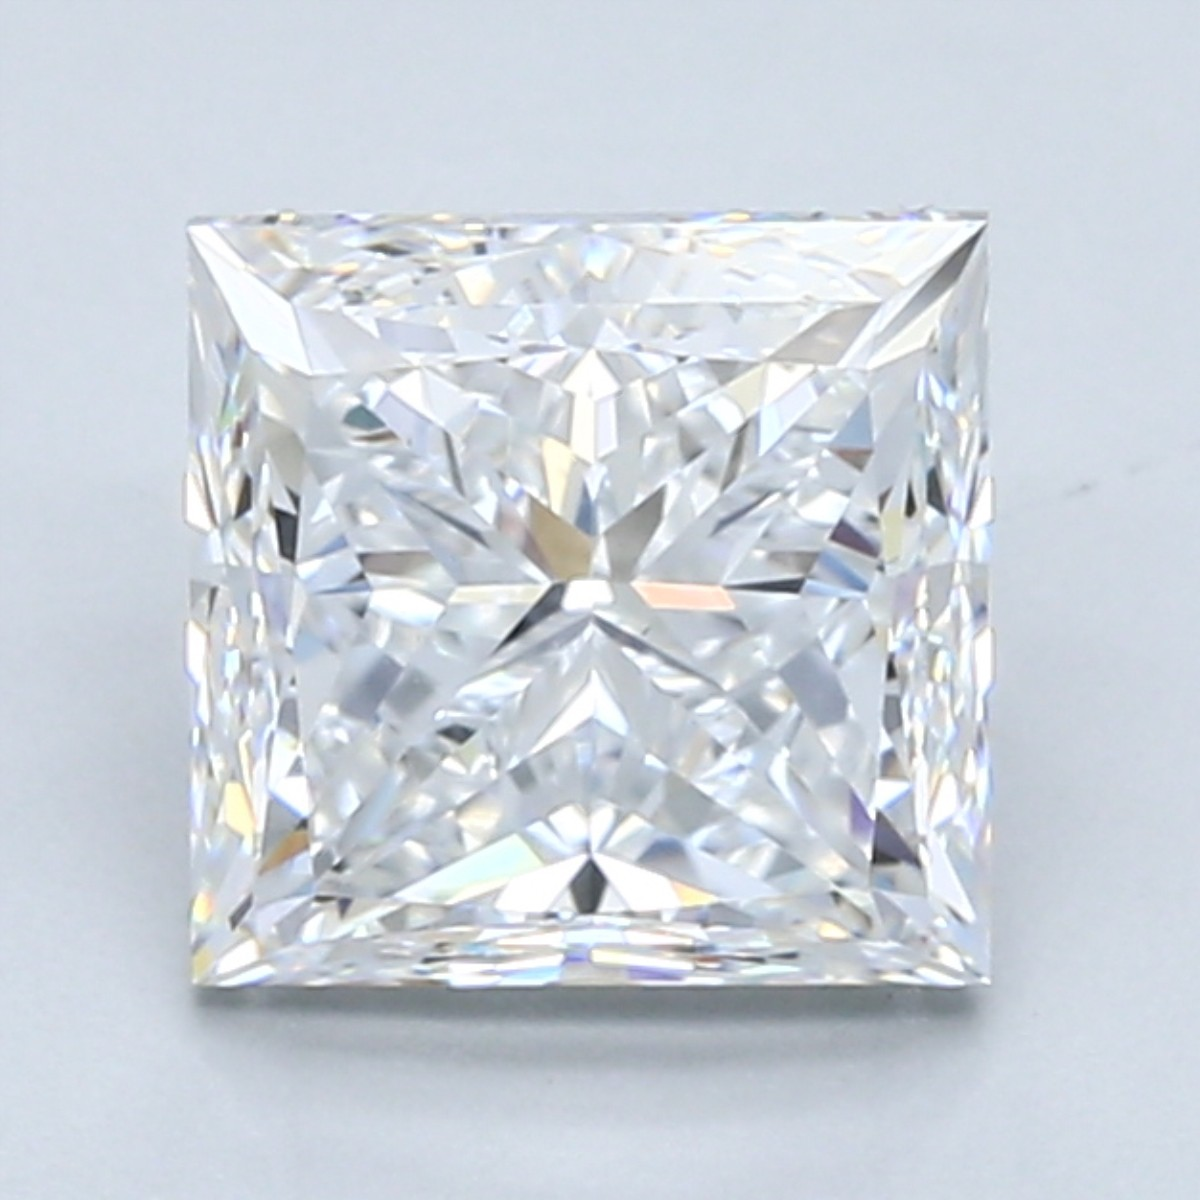 2.5 carat D color princess cut diamond